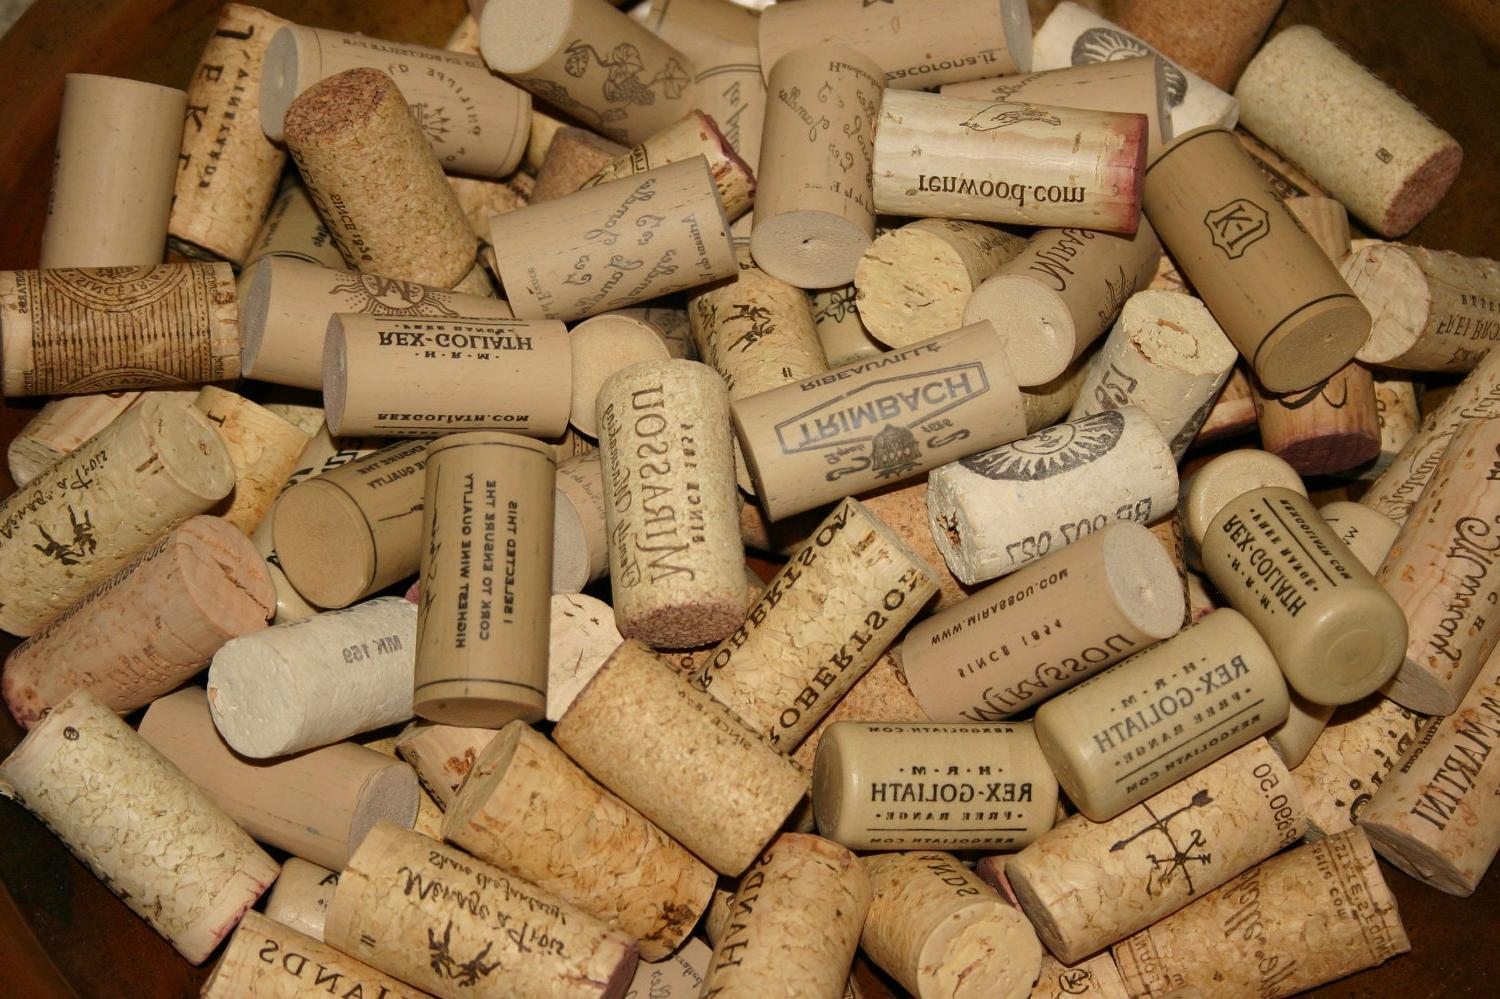 Wine corks used in weddings